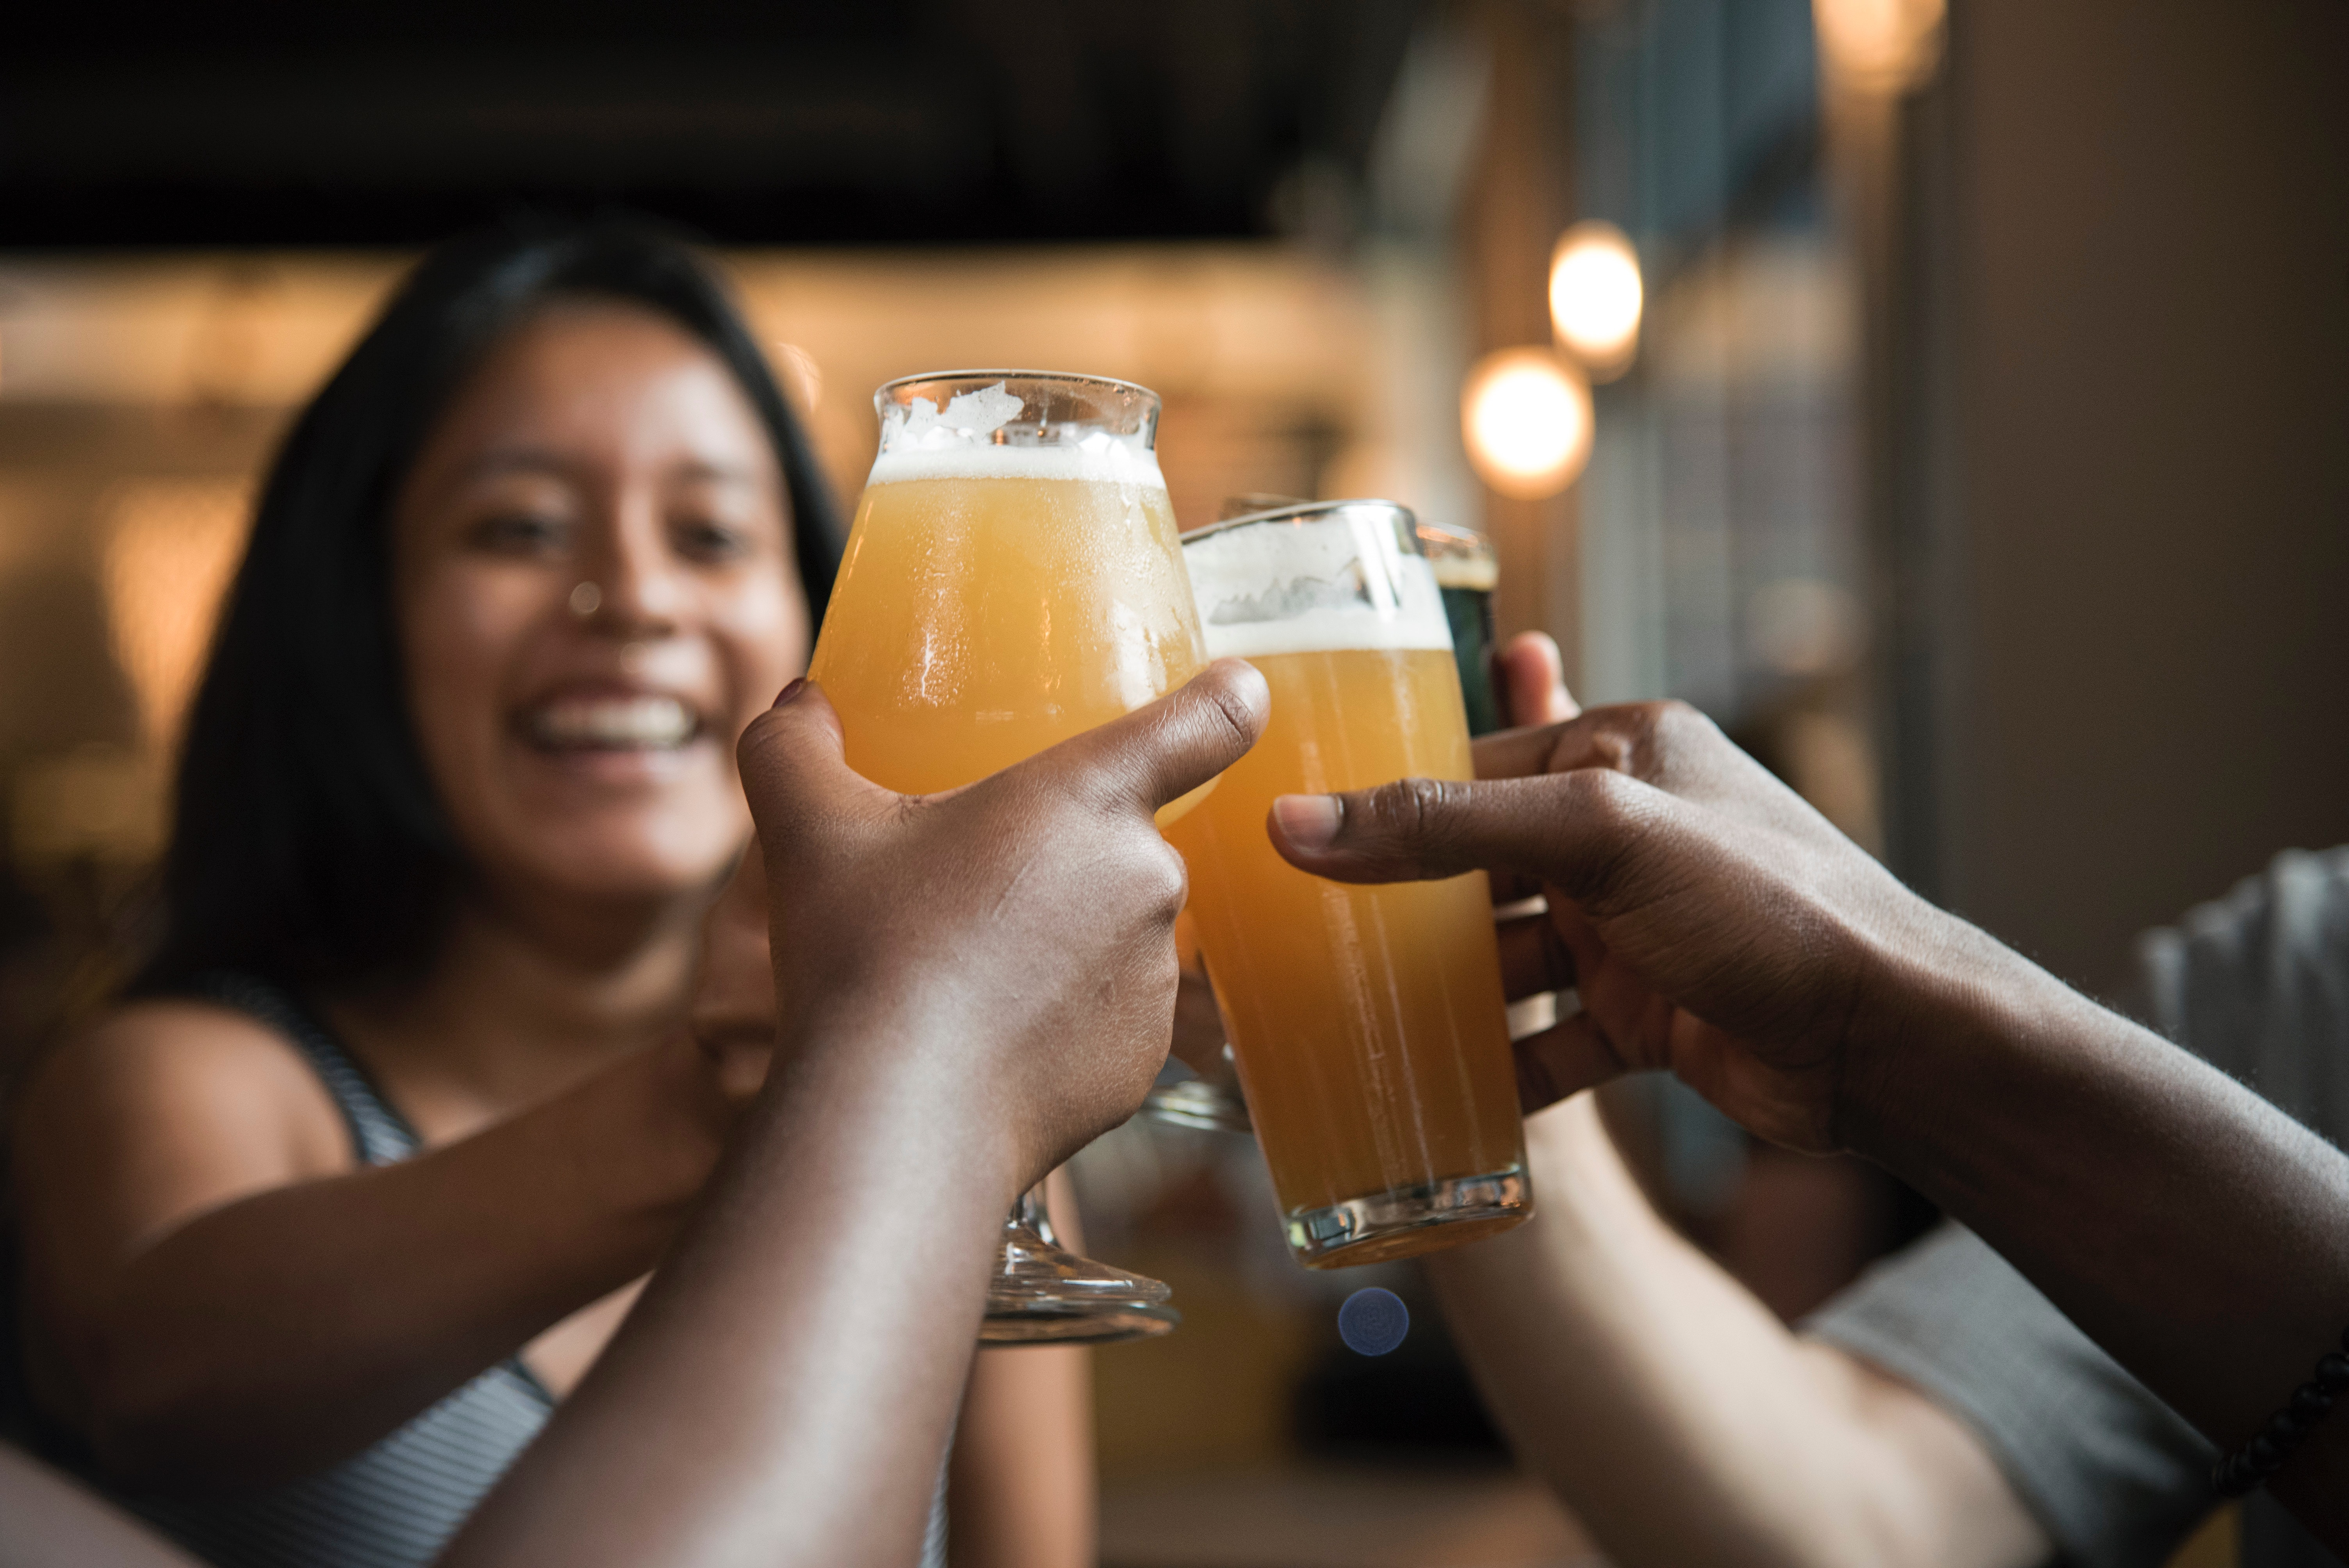 Close up photo of hands toasting beer glasses with smiling woman's face in background